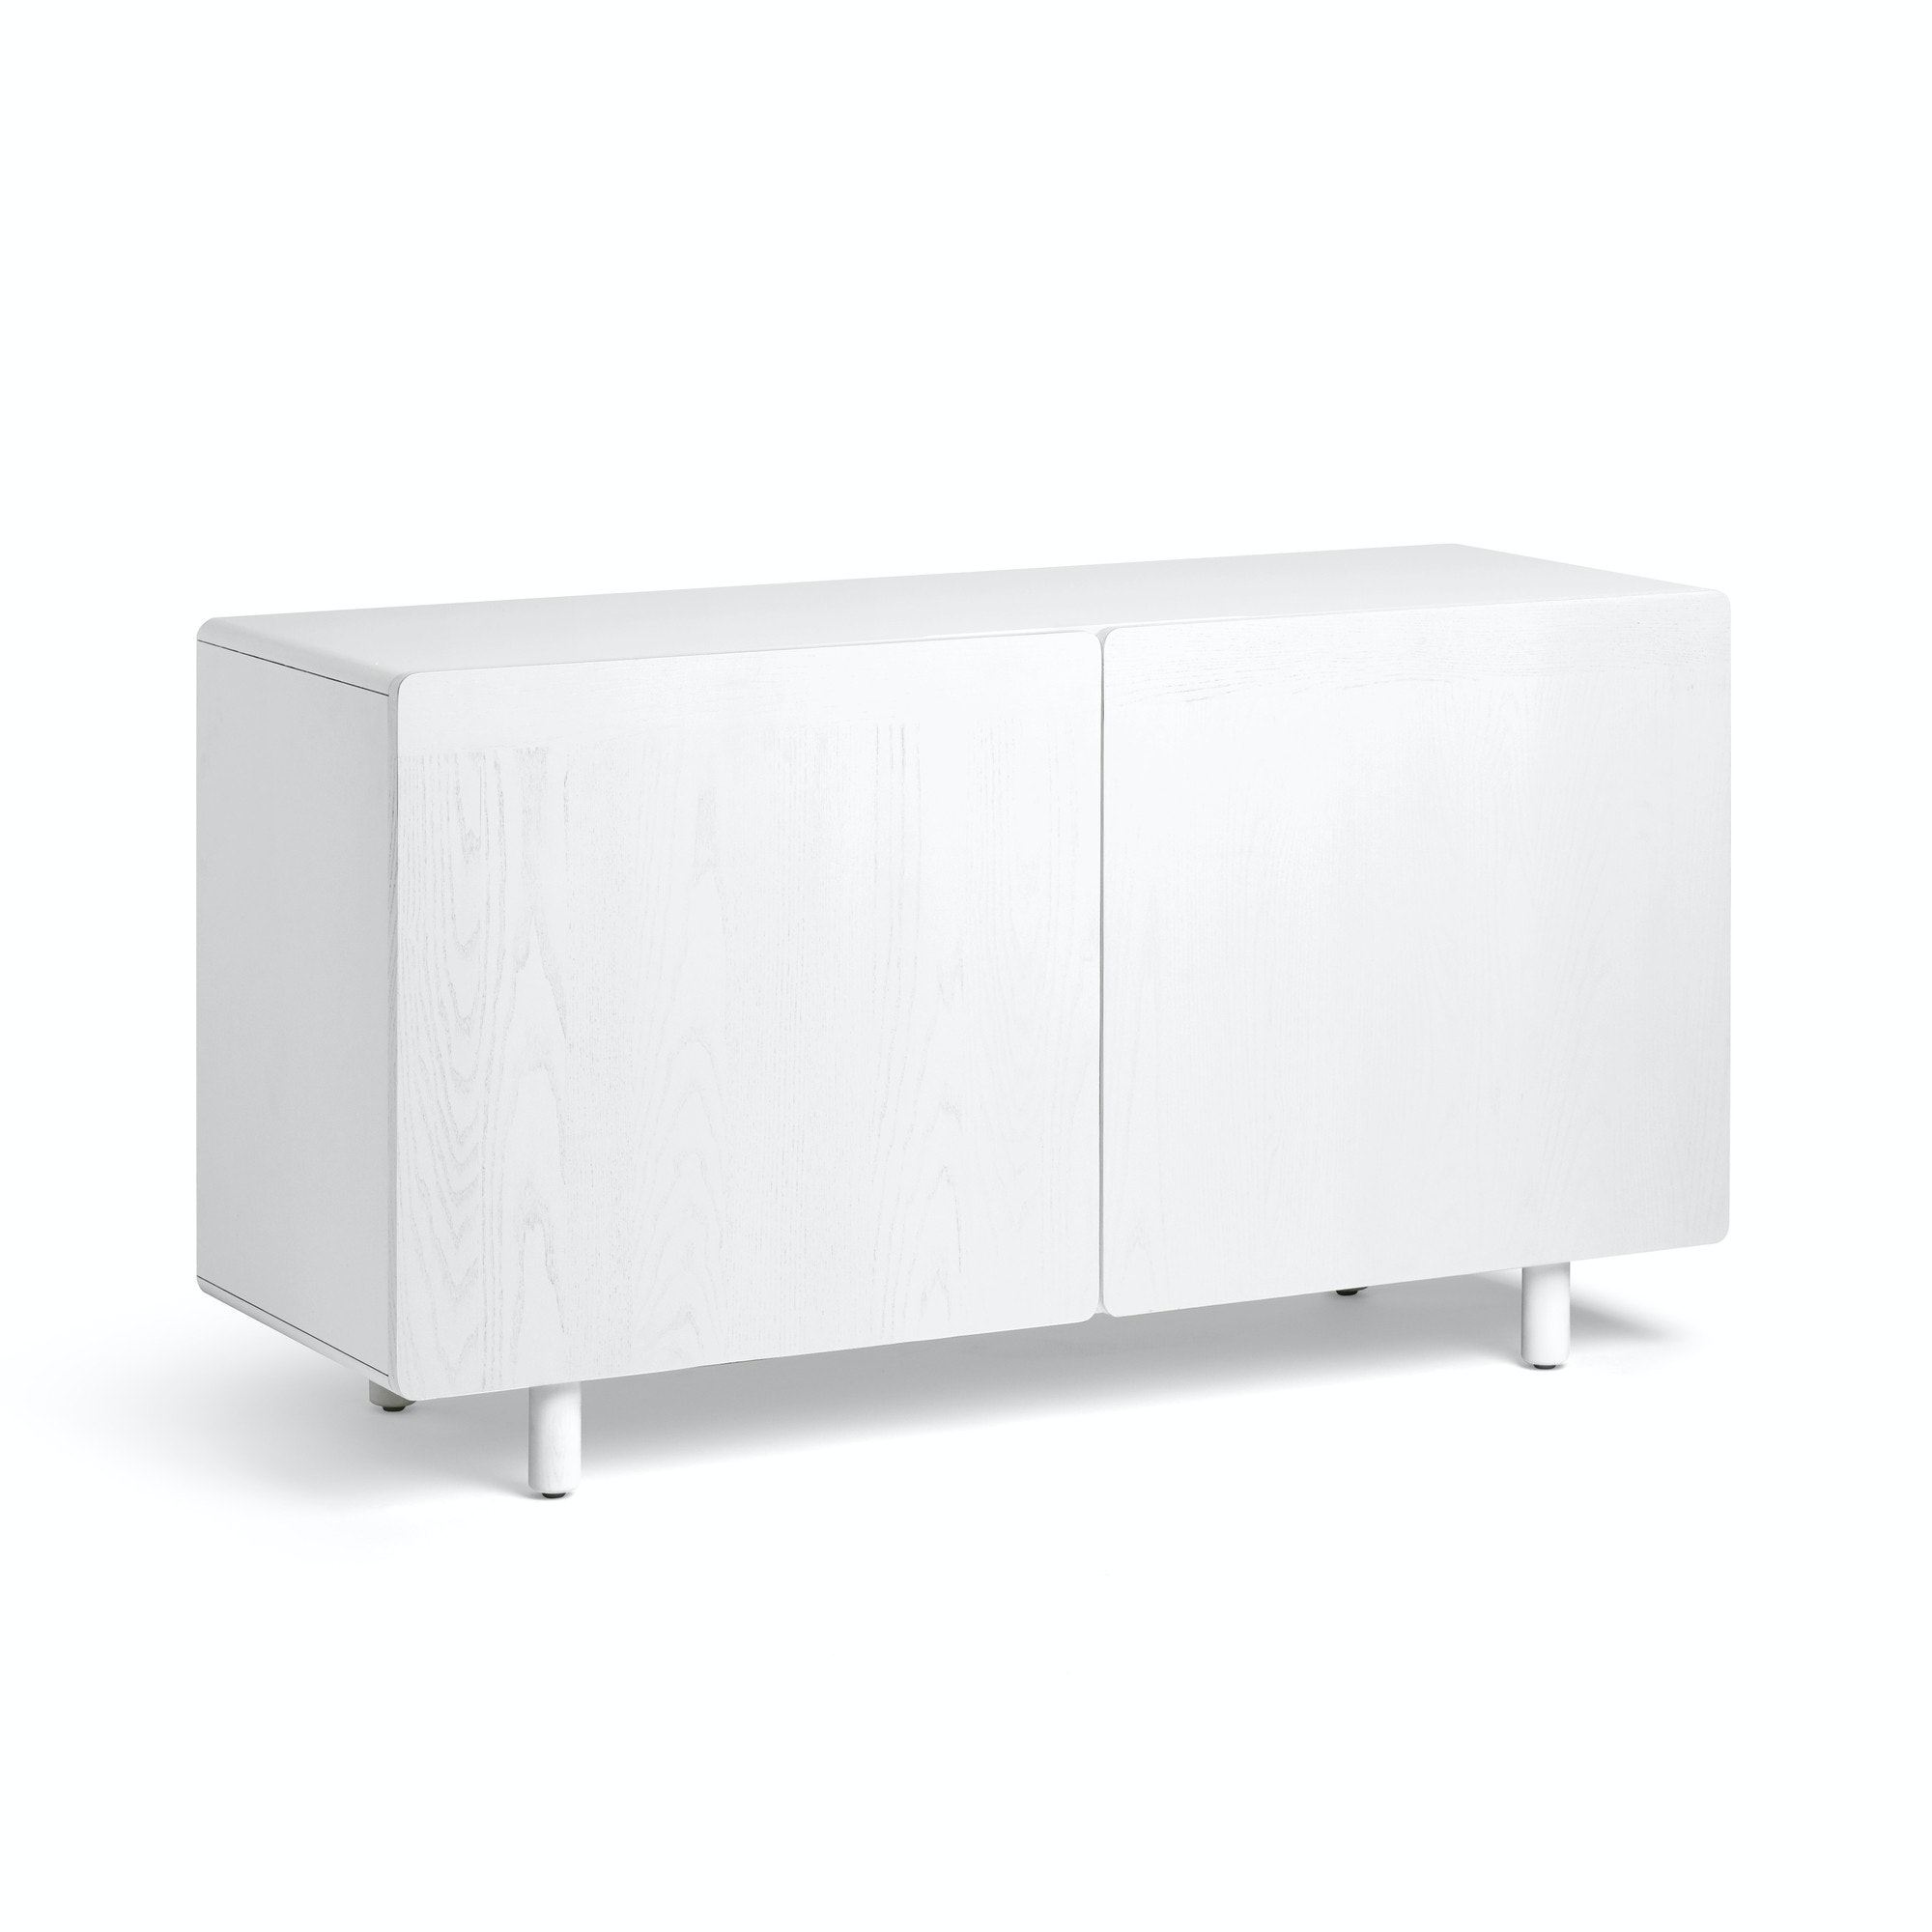 Office Furniture Storage cool storage units | modern office furniture | poppin